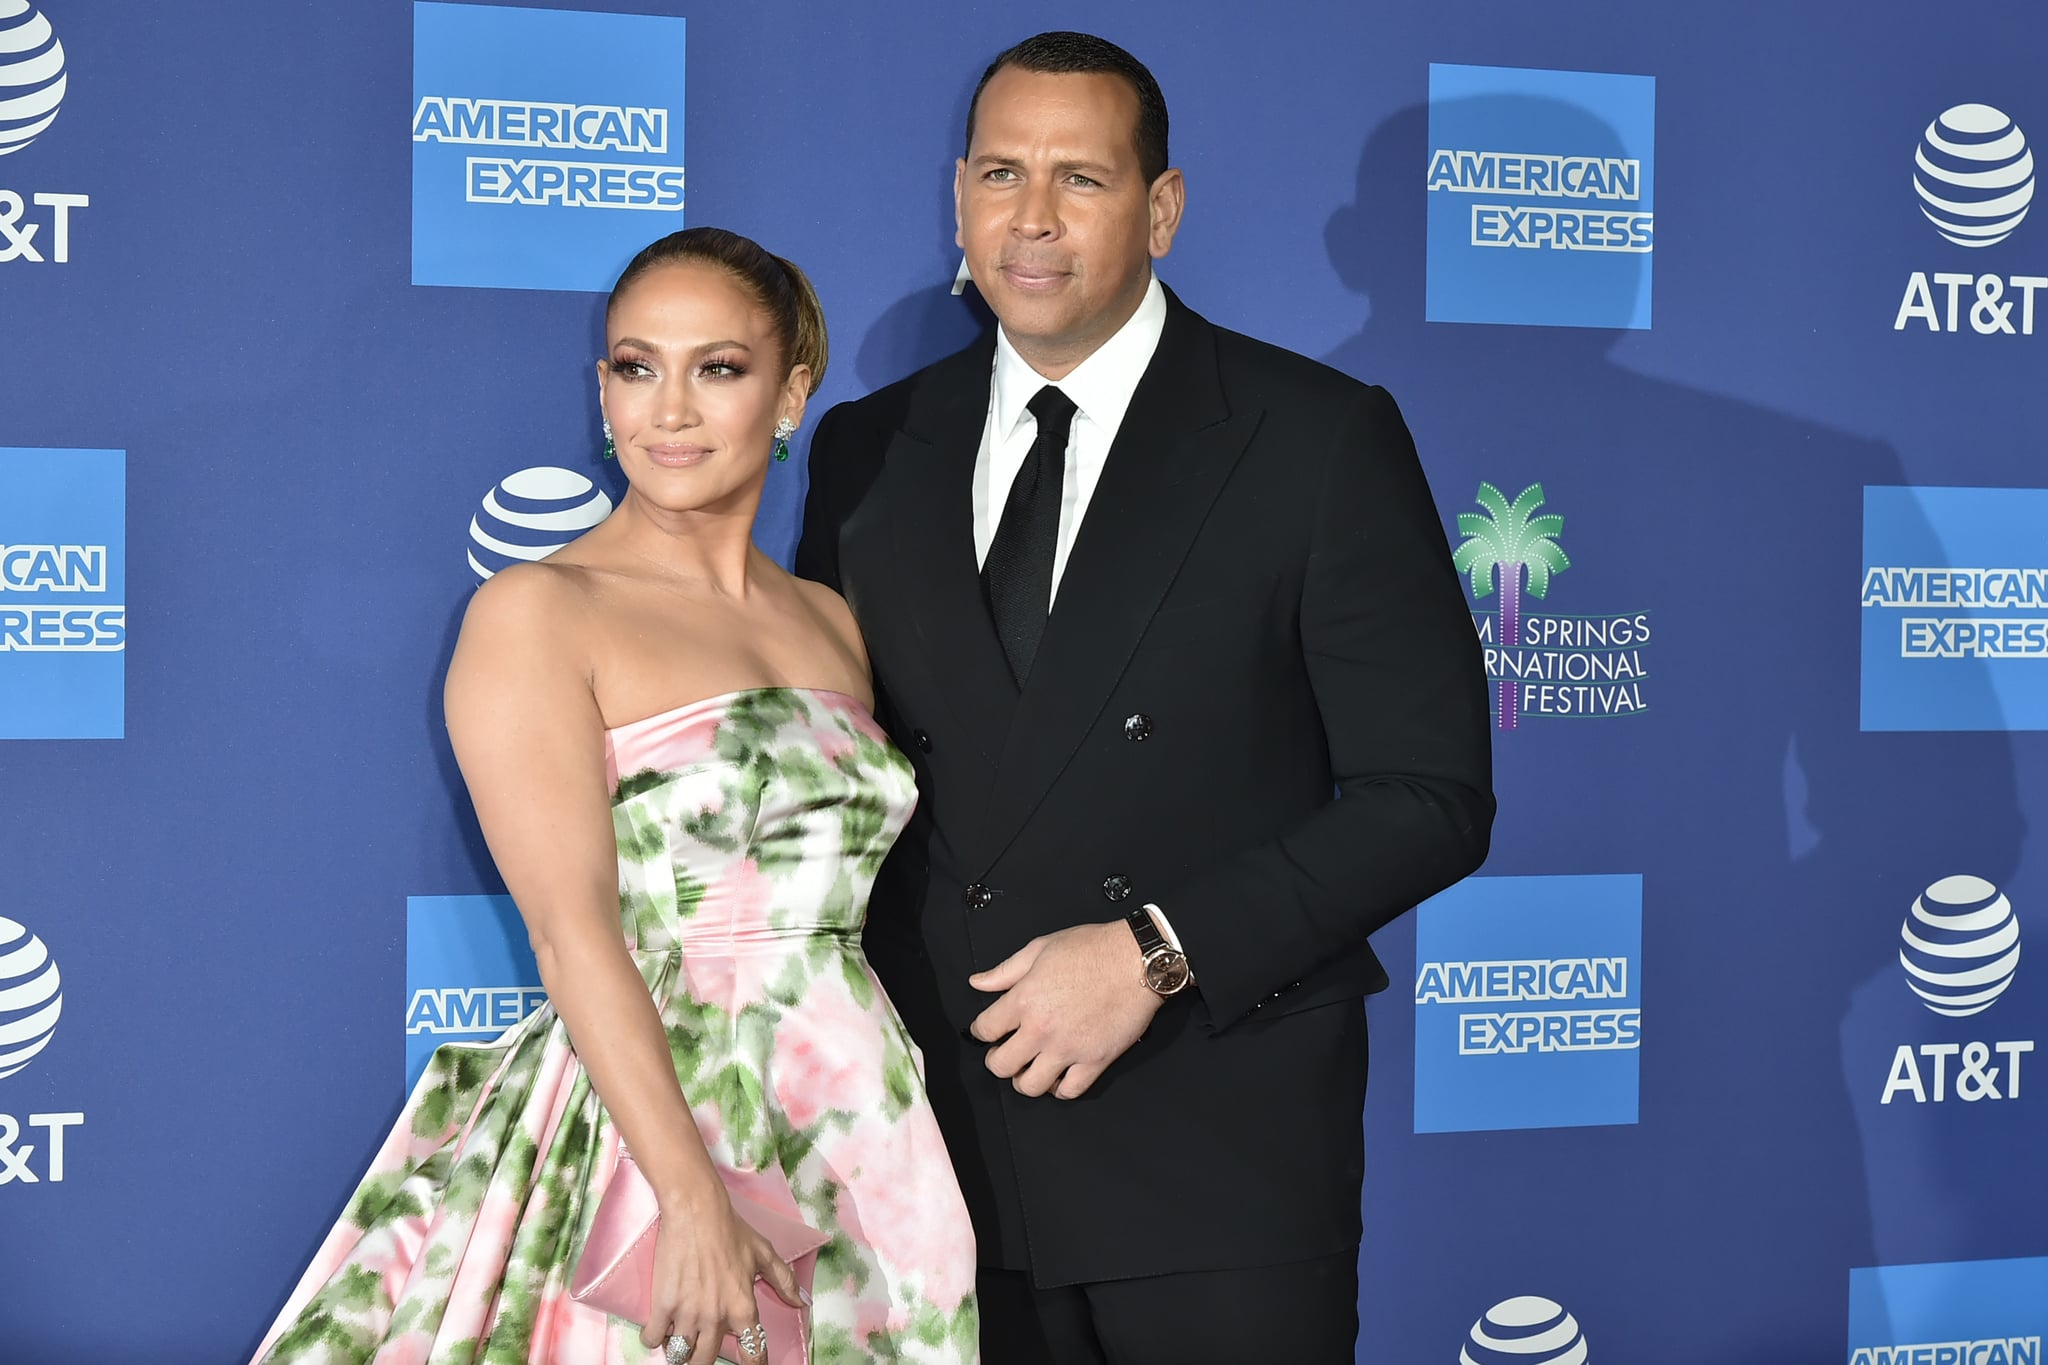 PALM SPRINGS, CALIFORNIA - JANUARY 02: Jennifer Lopez and Alex Rodriguez attend the 31st Annual Palm Springs International Film Festival Gala at Palm Springs Convention Center on January 02, 2020 in Palm Springs, California. (Photo by David Crotty/Patrick McMullan via Getty Images)